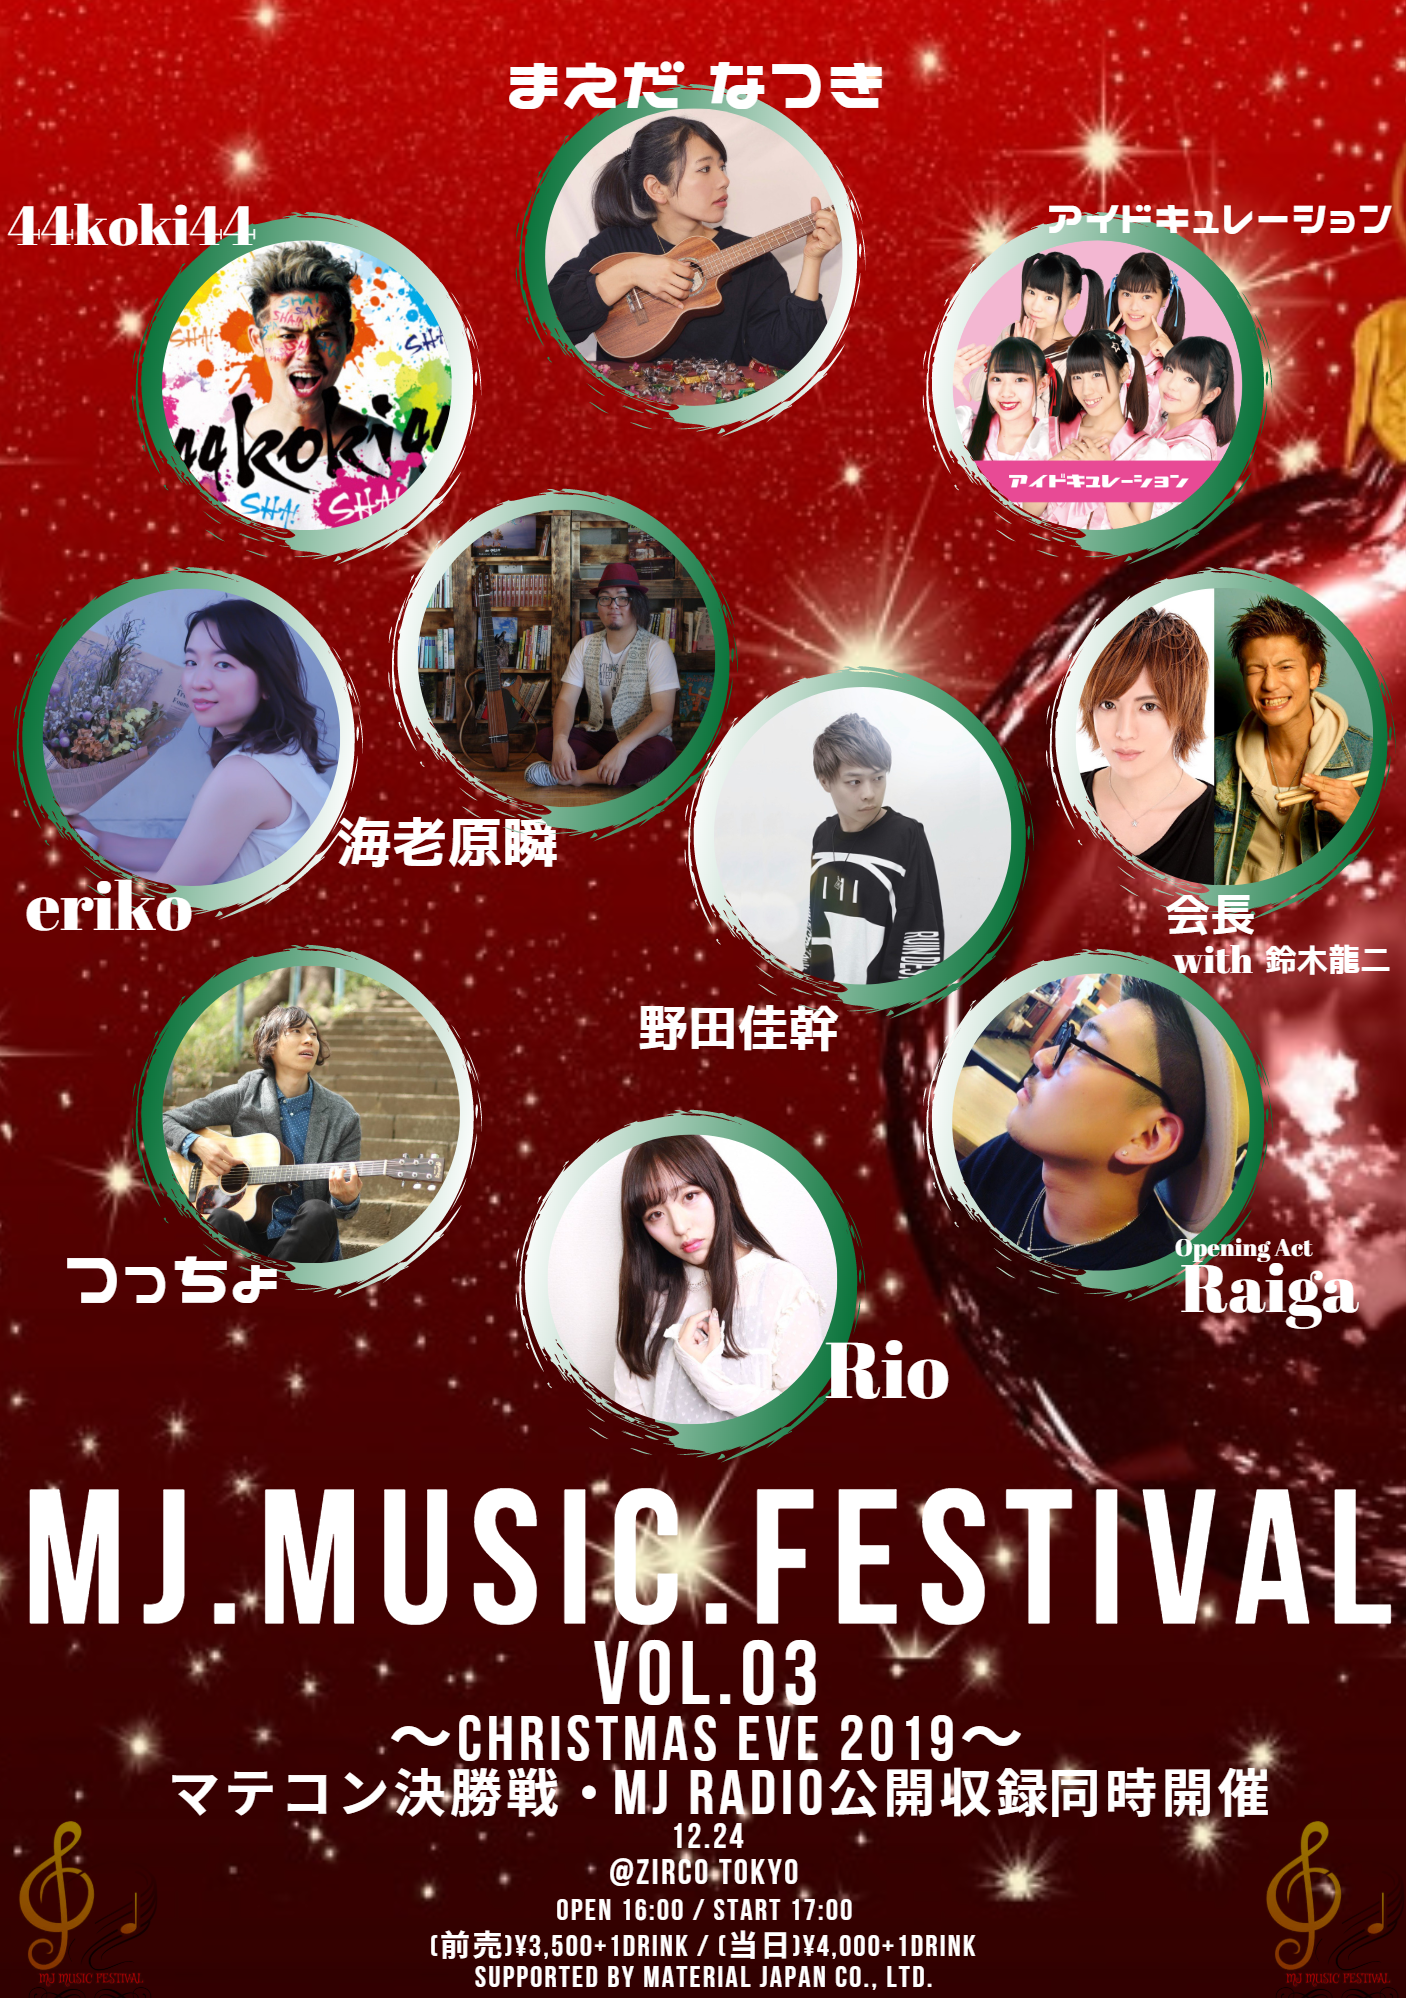 MJ.MUSIC.FESTIVAL Vol.03 ~CHRISTMAS EVE 2019~